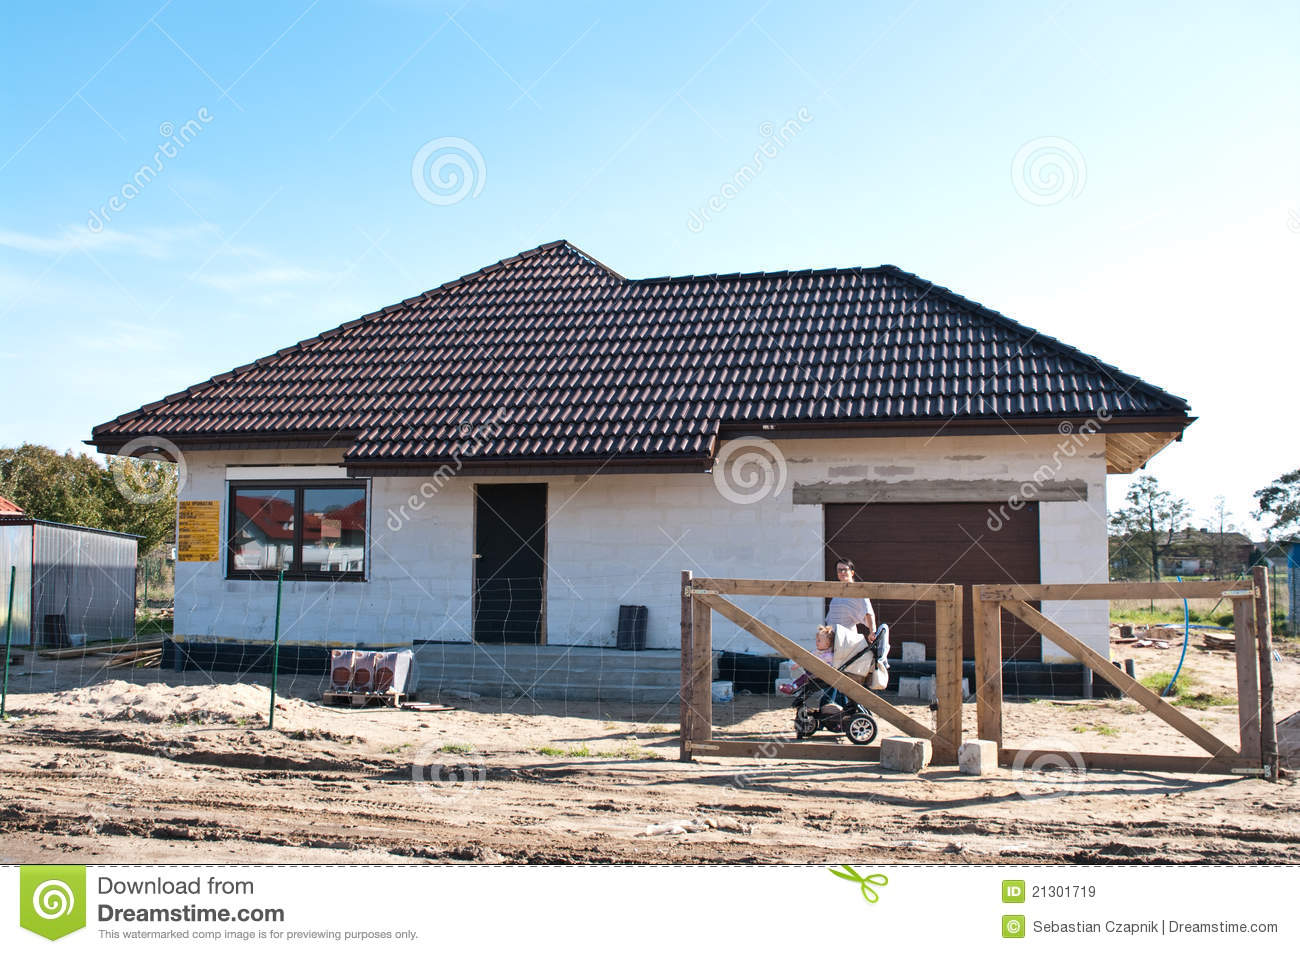 Private home building